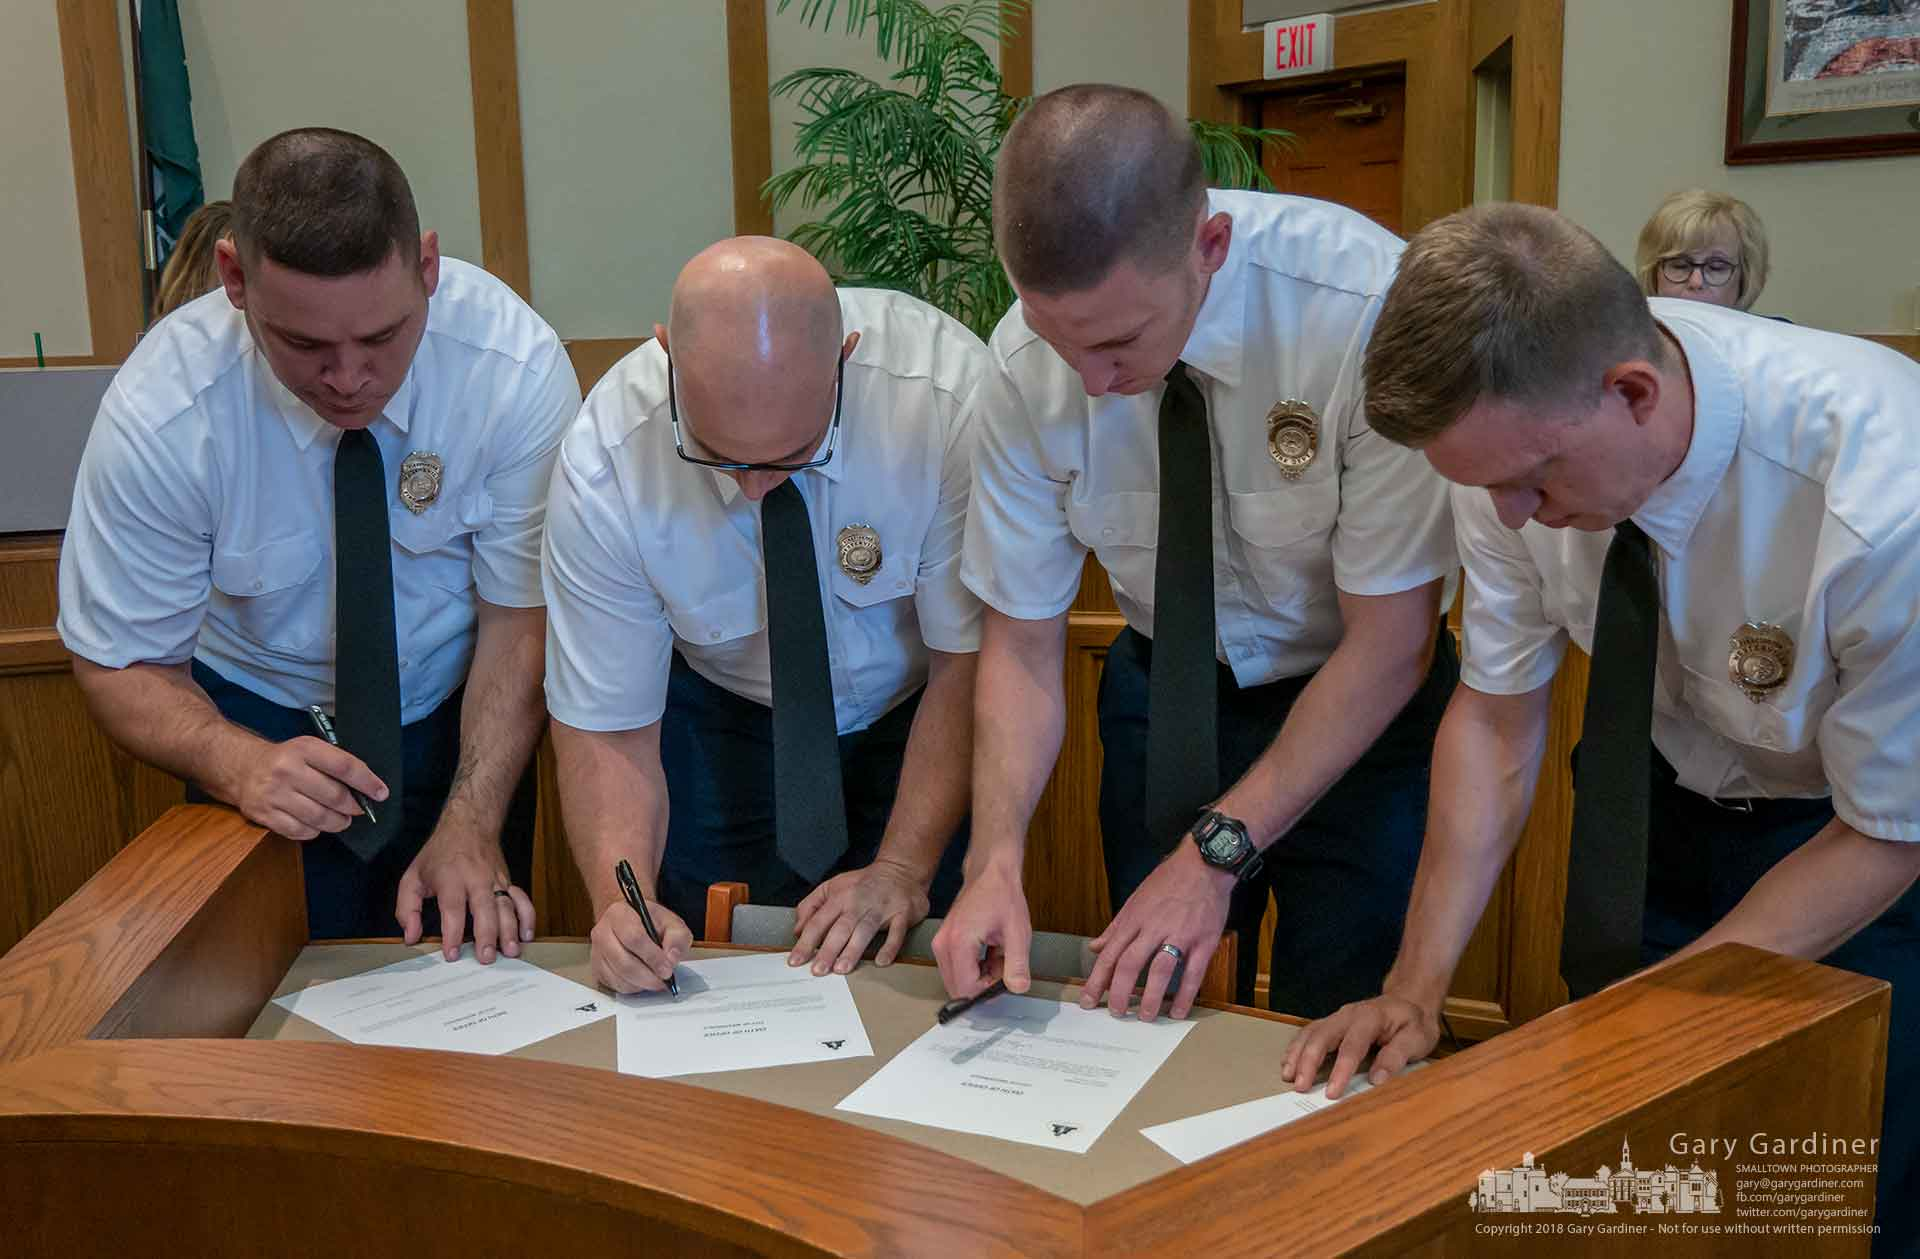 Westerville's newest firefighters, from left, Ryan Wamsley, Andrew Taylor, Andrew Saunders, and Stephen Burger, sign paperwork making their assignments as Westerville firefighters official after being sworn in at City Council. My Final Photo for July 2, 2018.